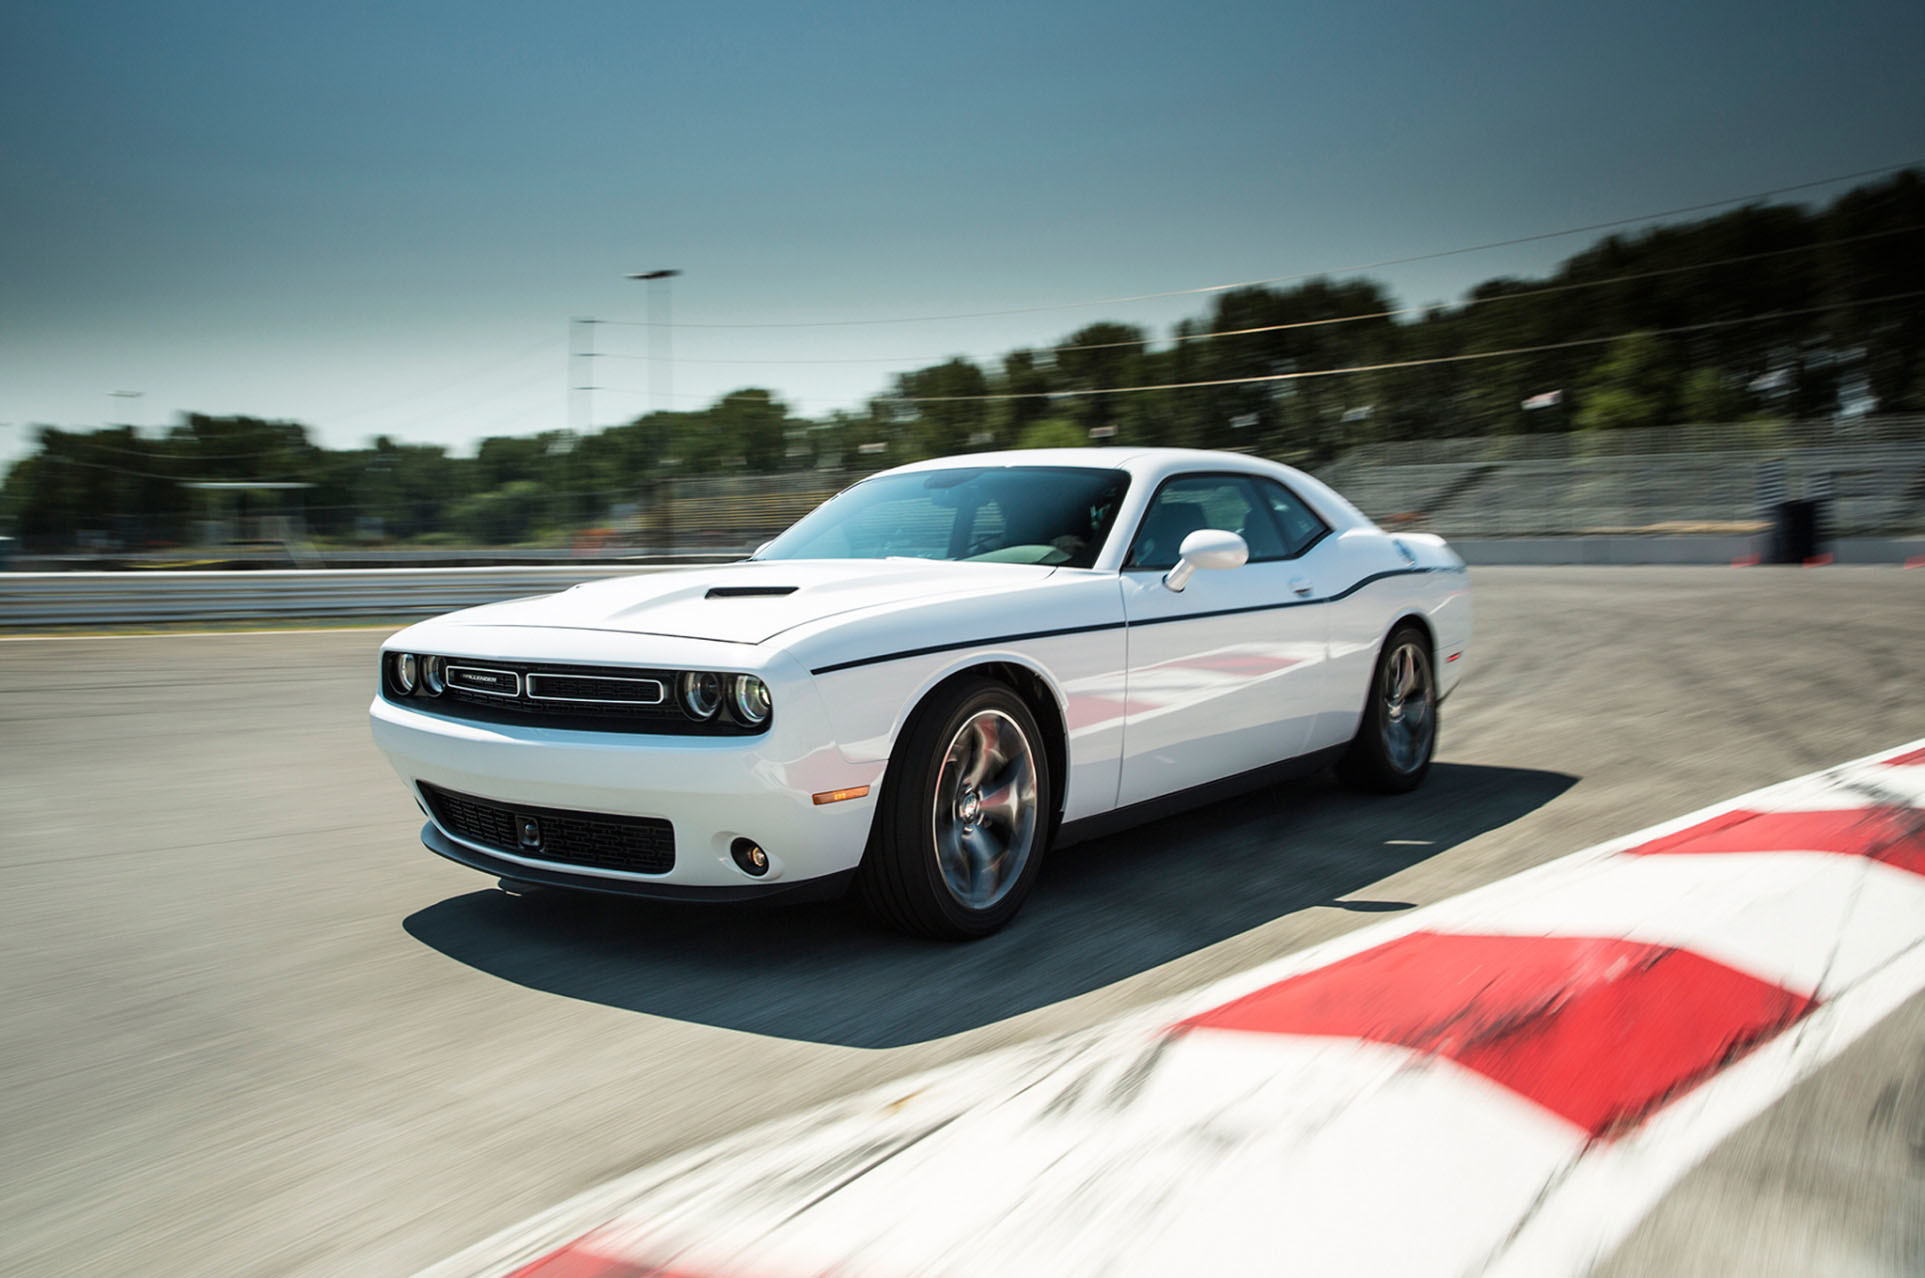 2015 Dodge Challenger SRT 392 White HD Wallpaper